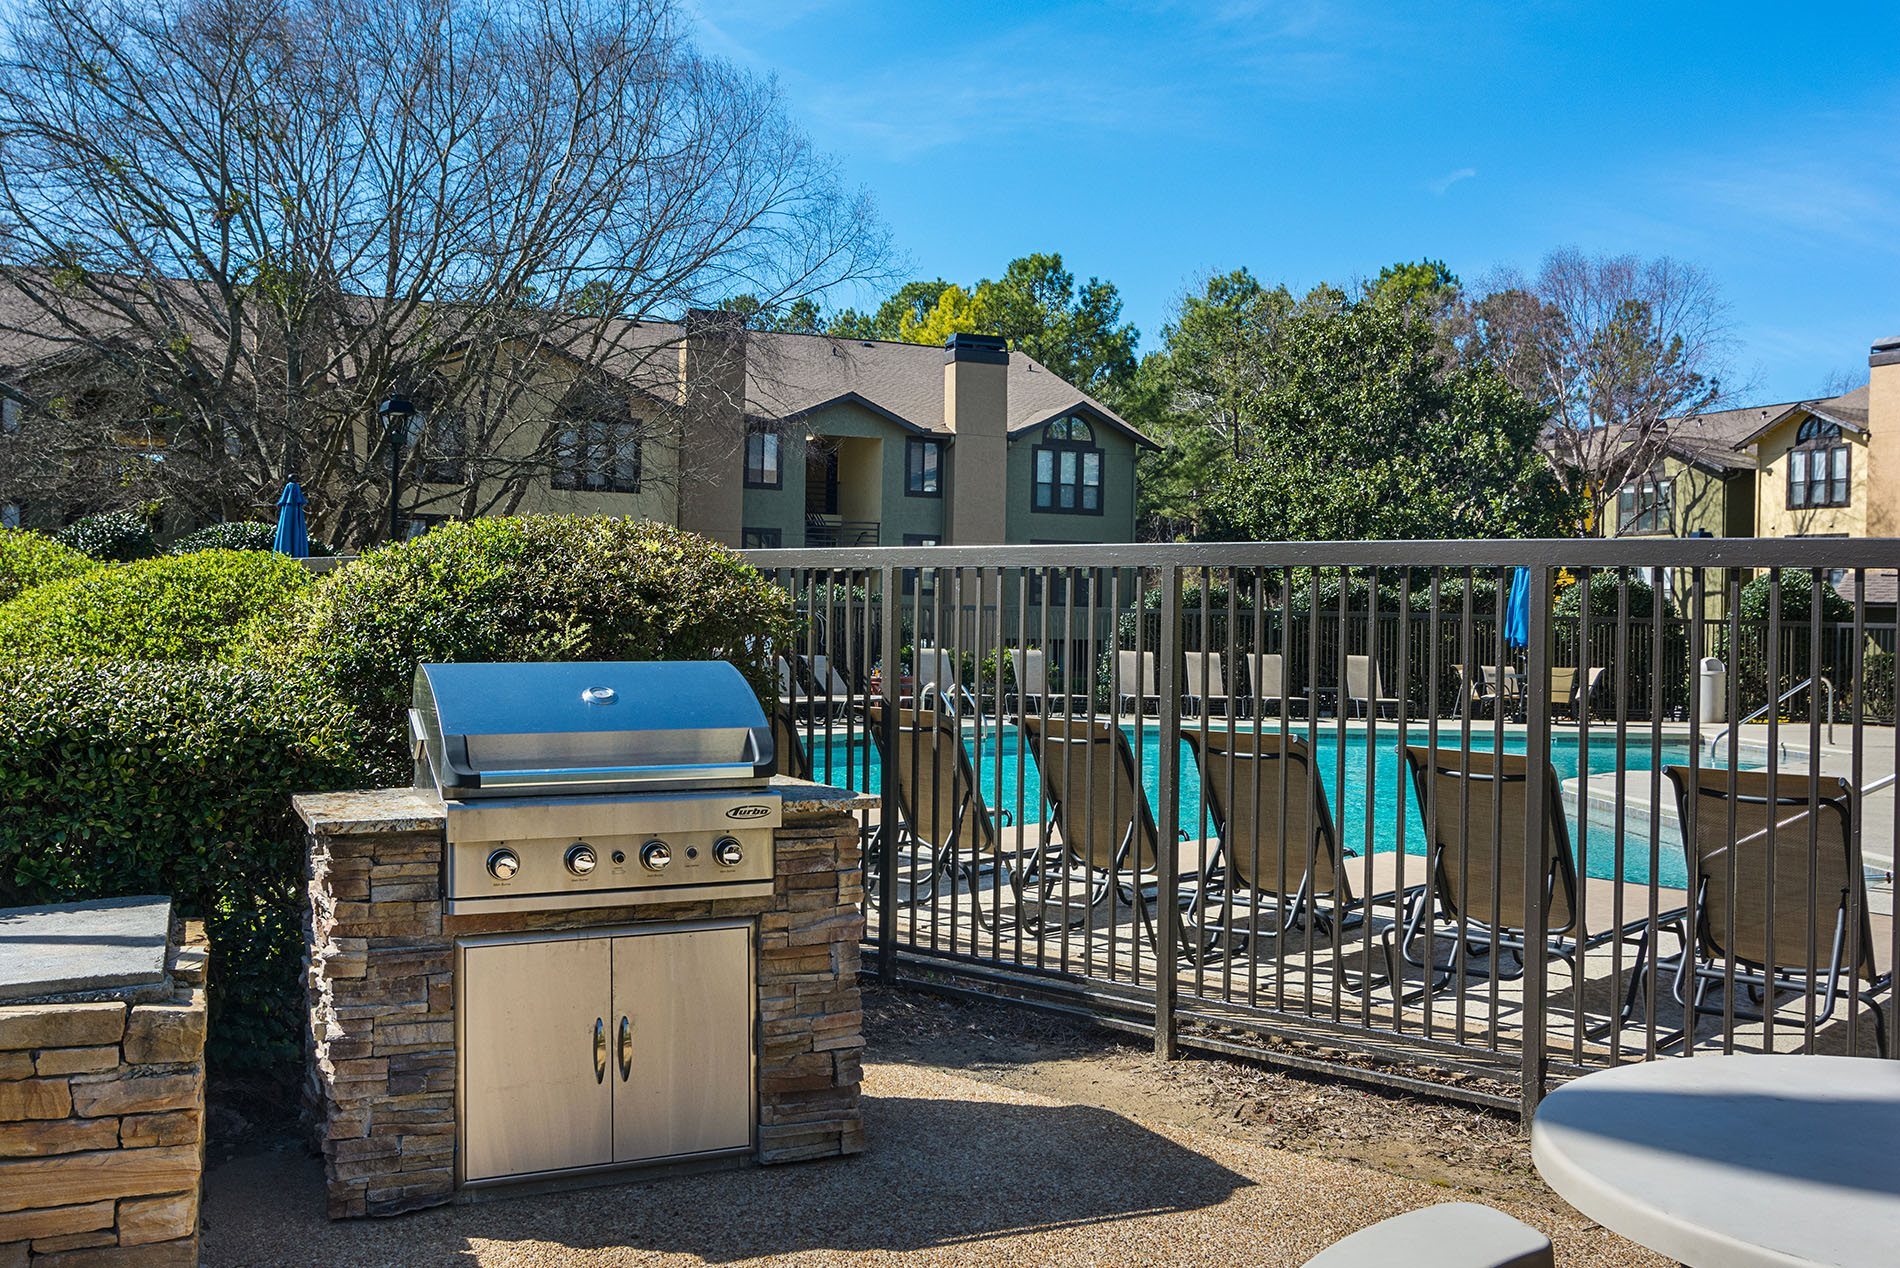 Photos and Video of Waterford Place in Atlanta, GA